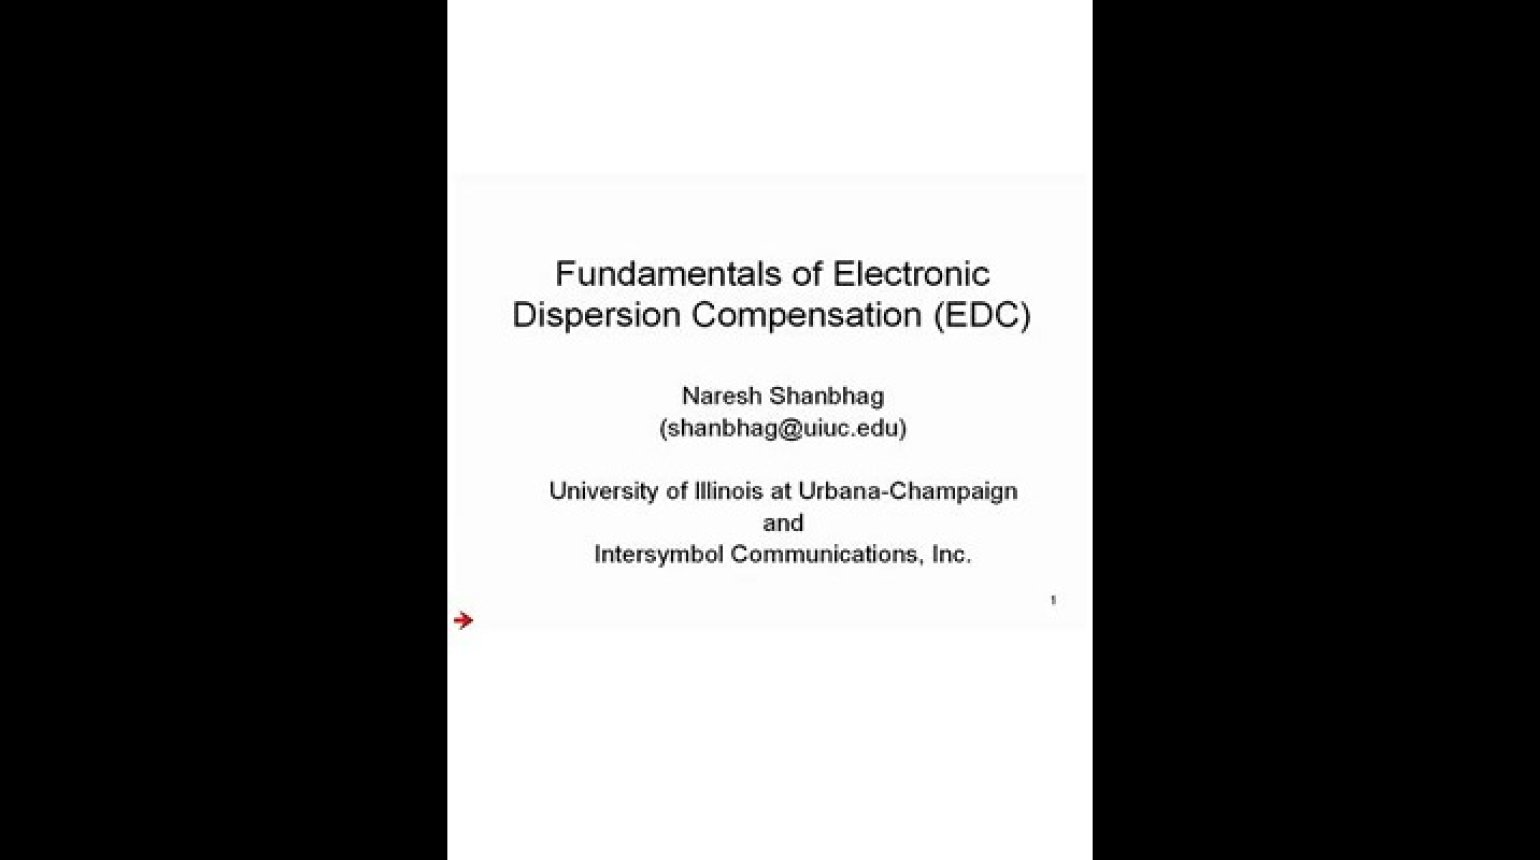 Fundamentals of Electric Dispersion Compensation (EDC) Video